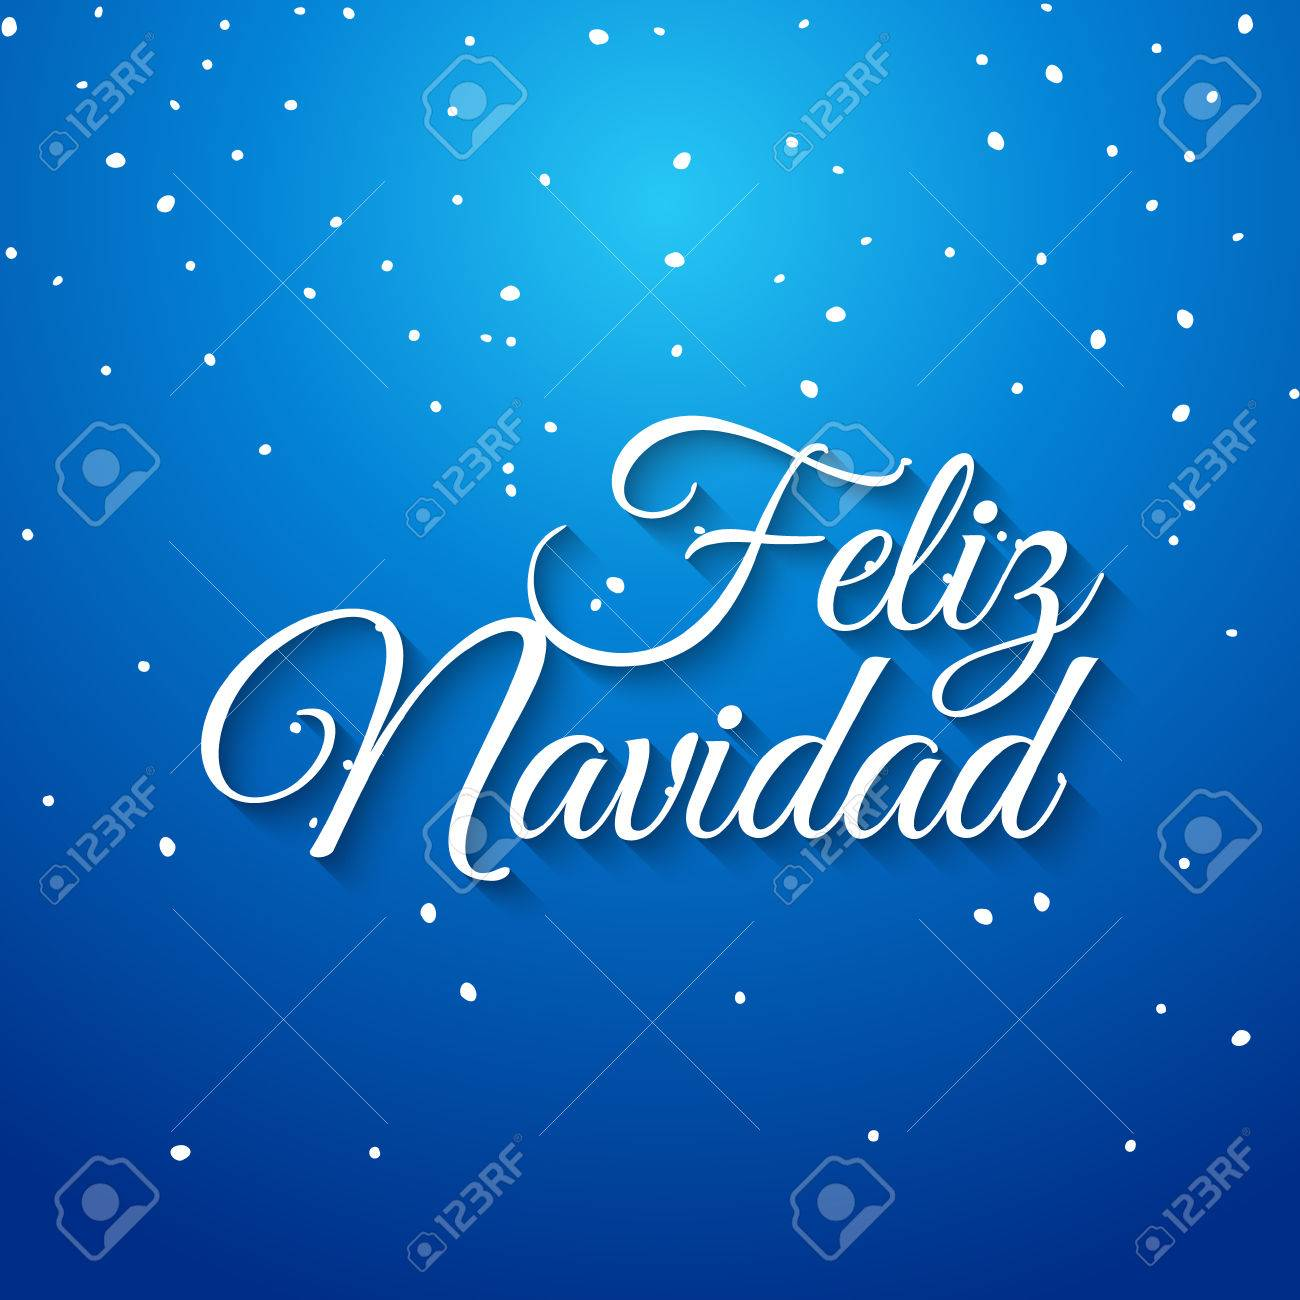 Feliz navidad spanish vector card mery christmas greeting banner feliz navidad spanish vector card mery christmas greeting banner holiday celebration christmas typography feliz m4hsunfo